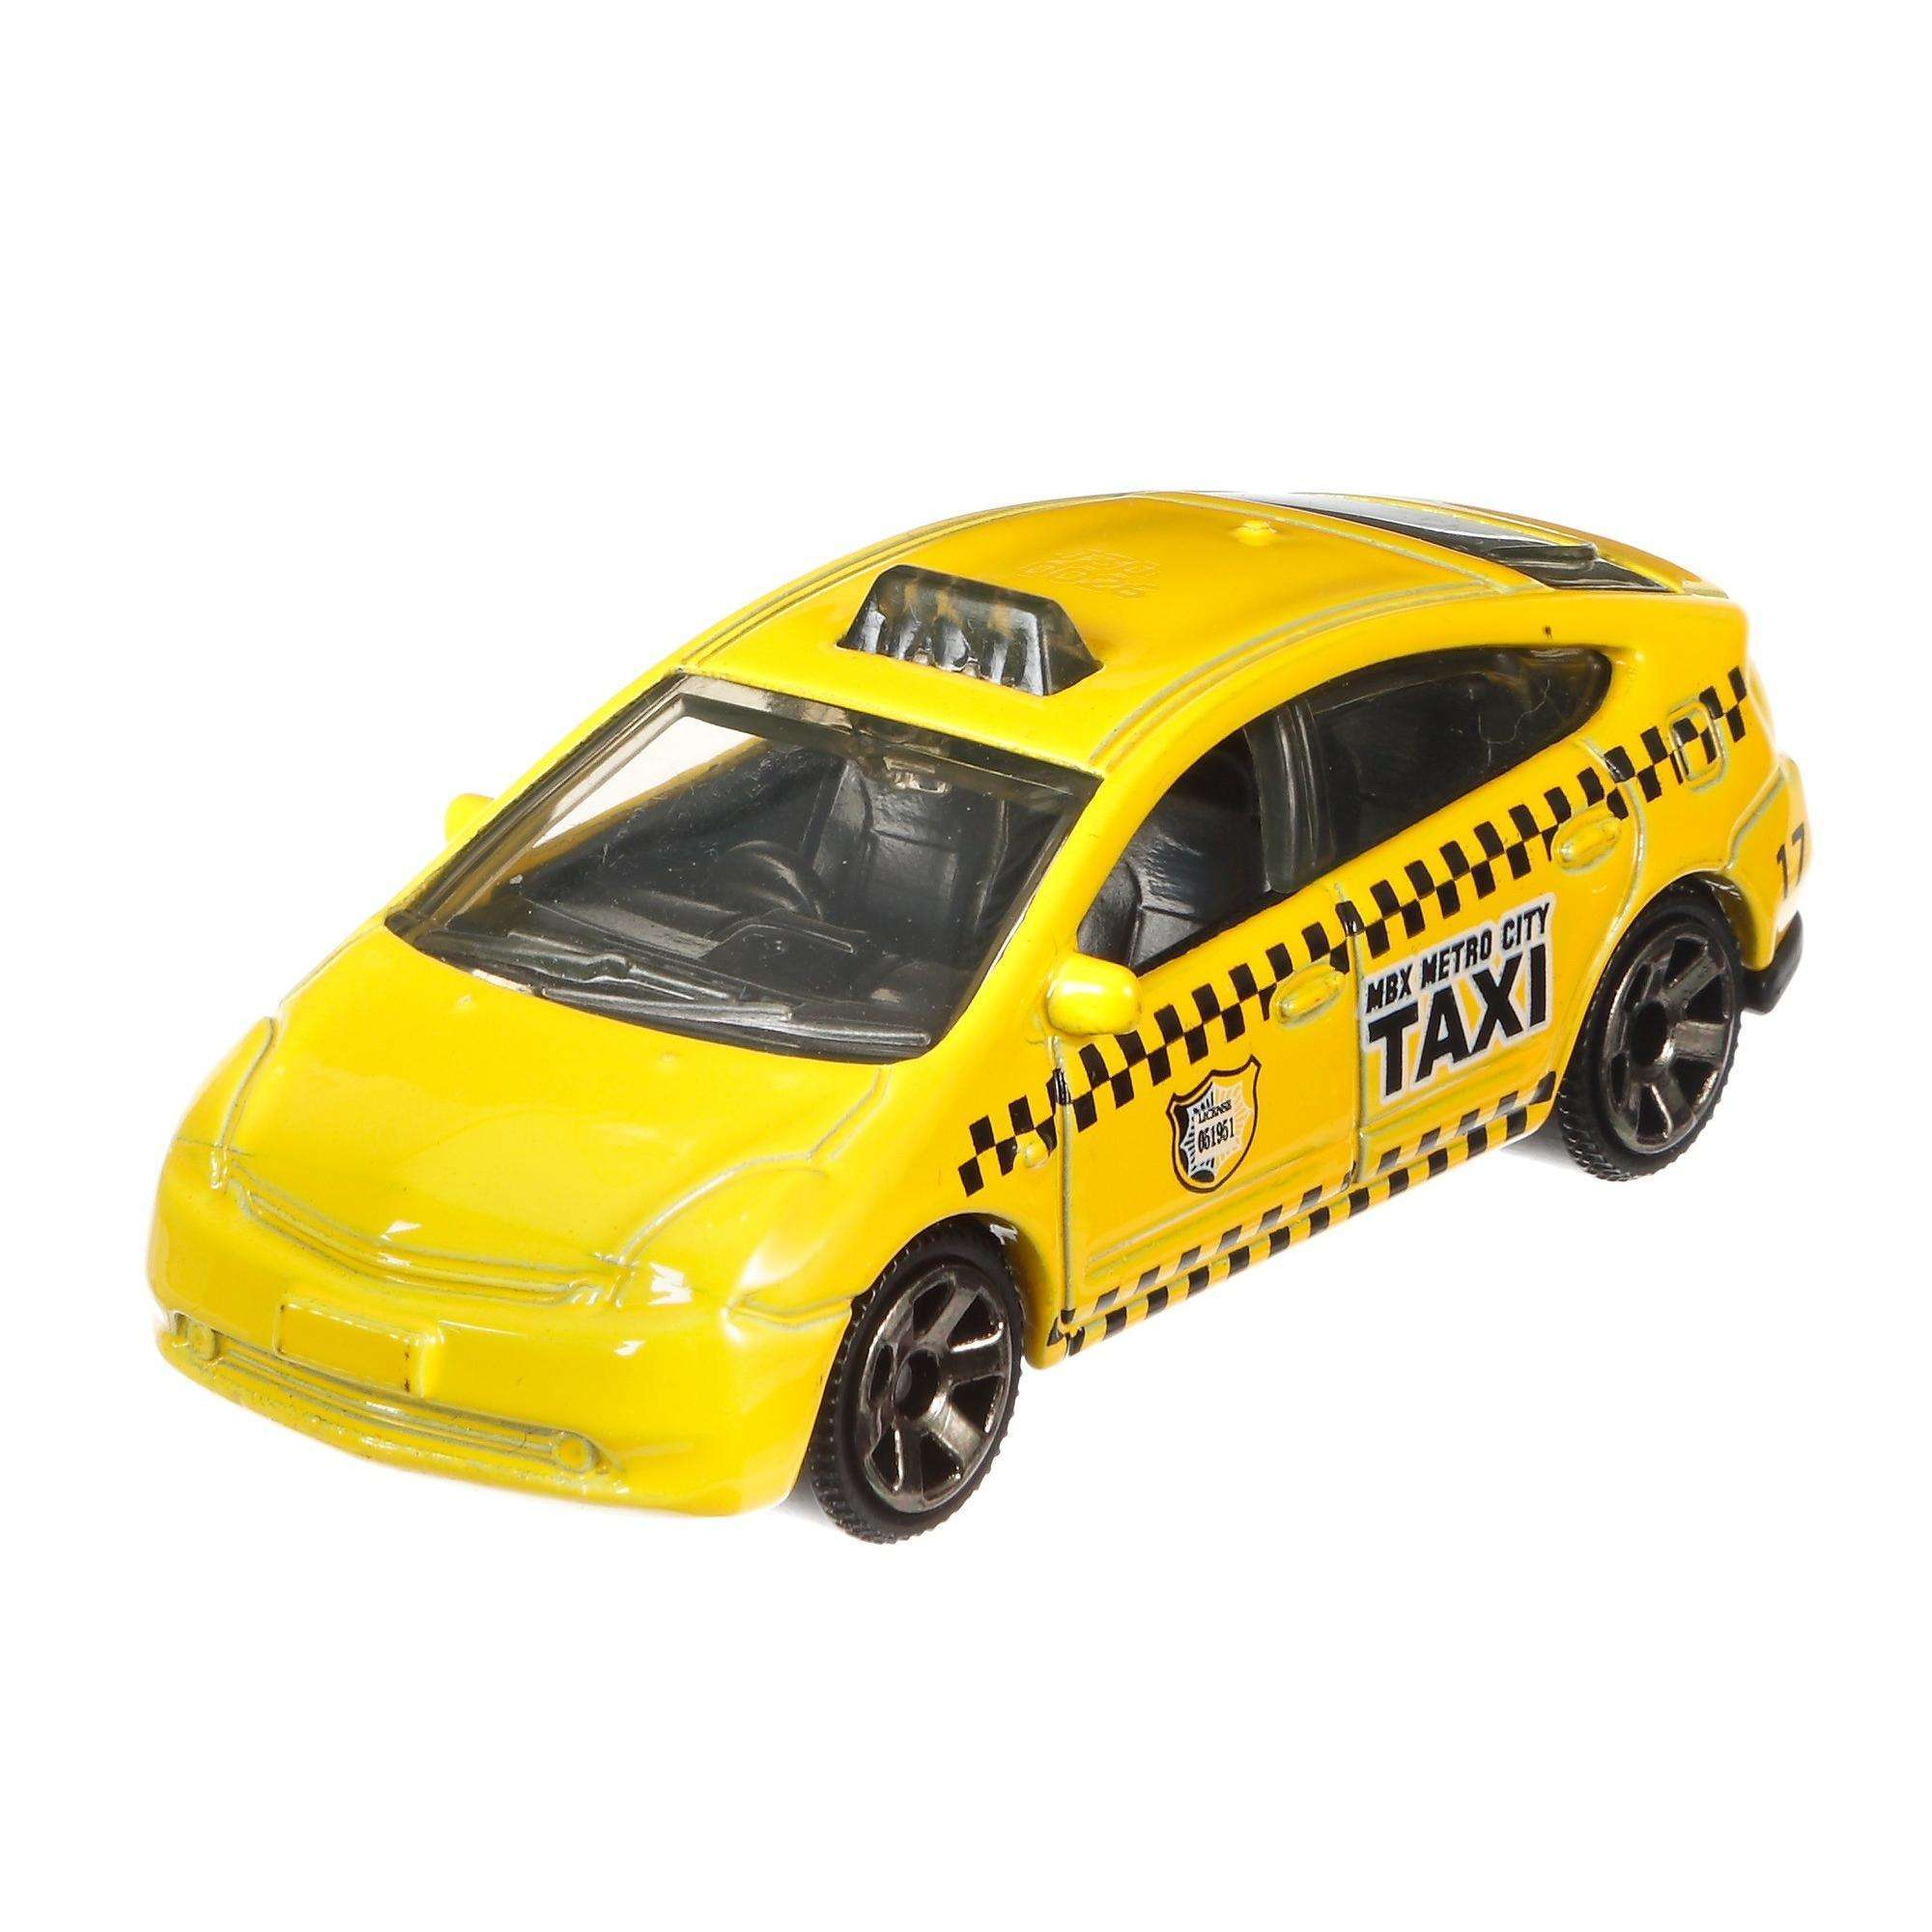 Matchbox 1:64 Scale Collectible Car (Styles May Vary)